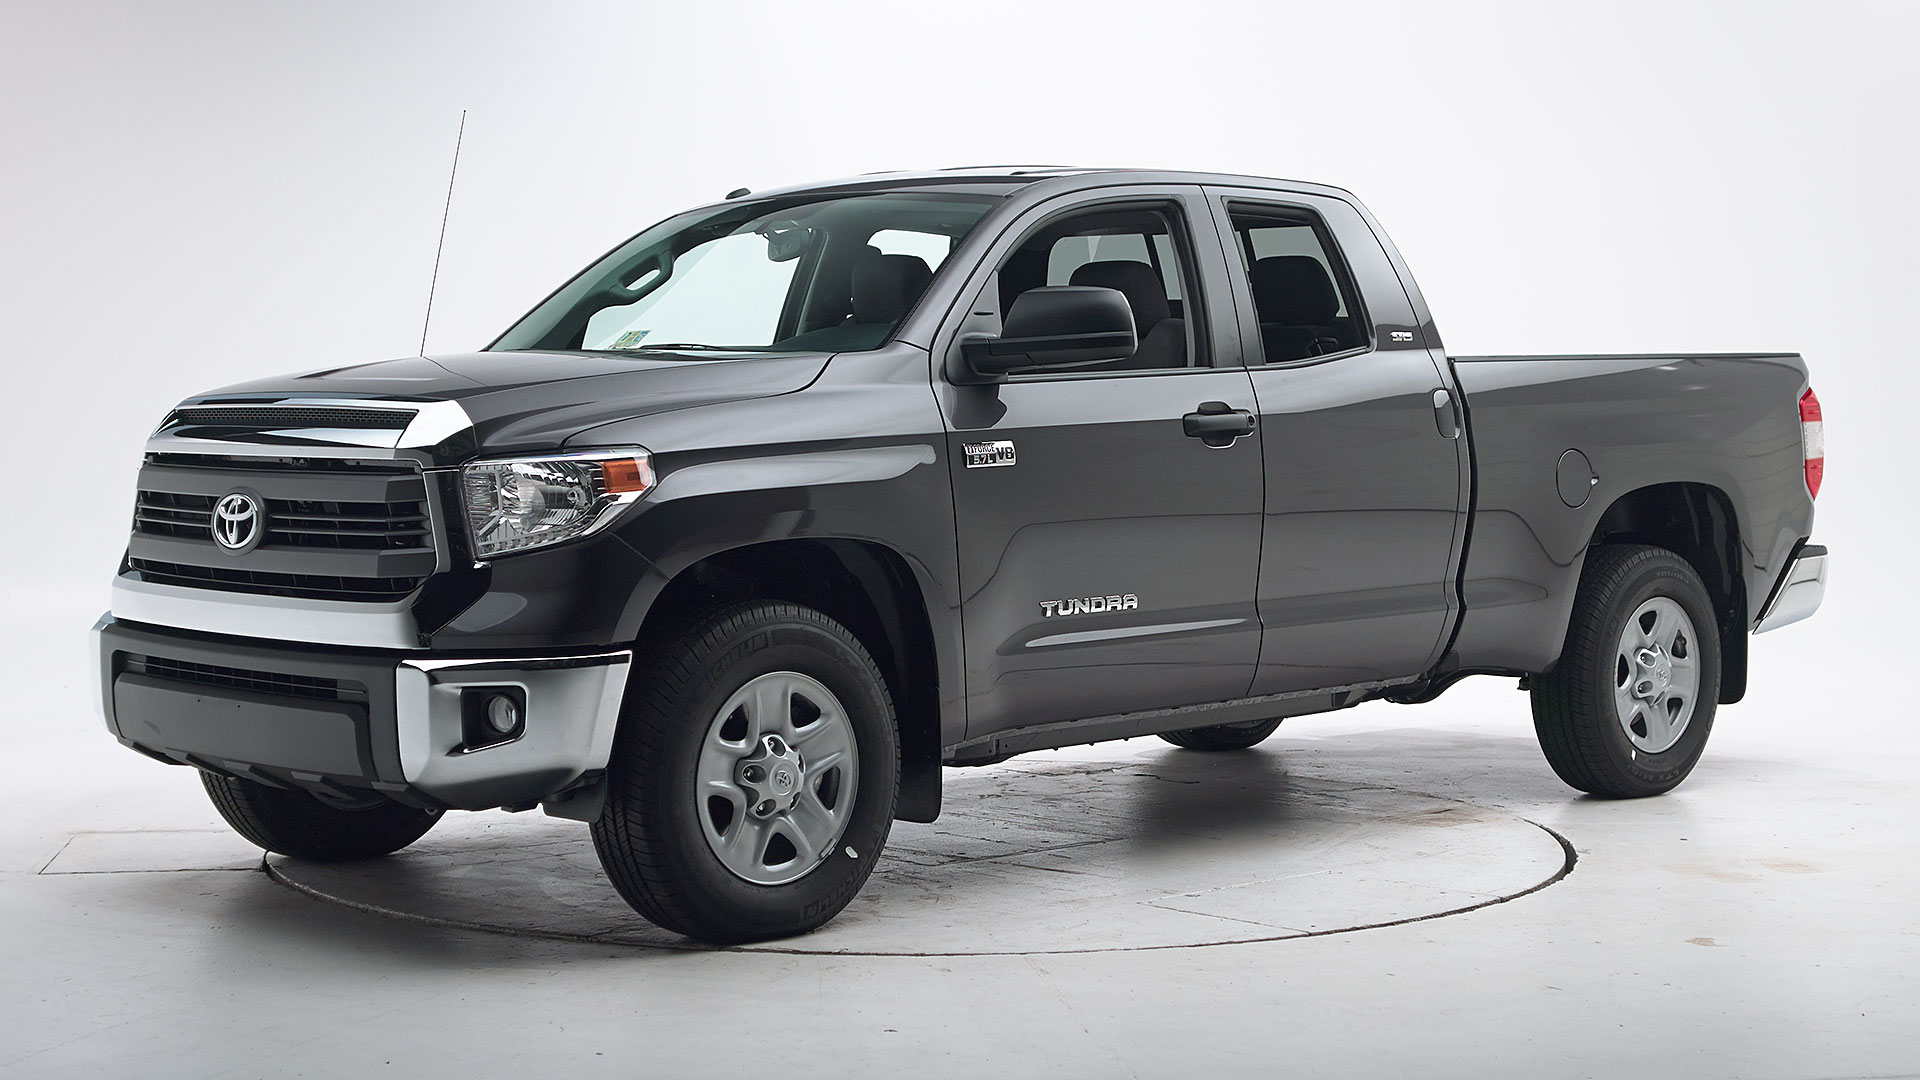 2017 Toyota Tundra Extended cab pickup